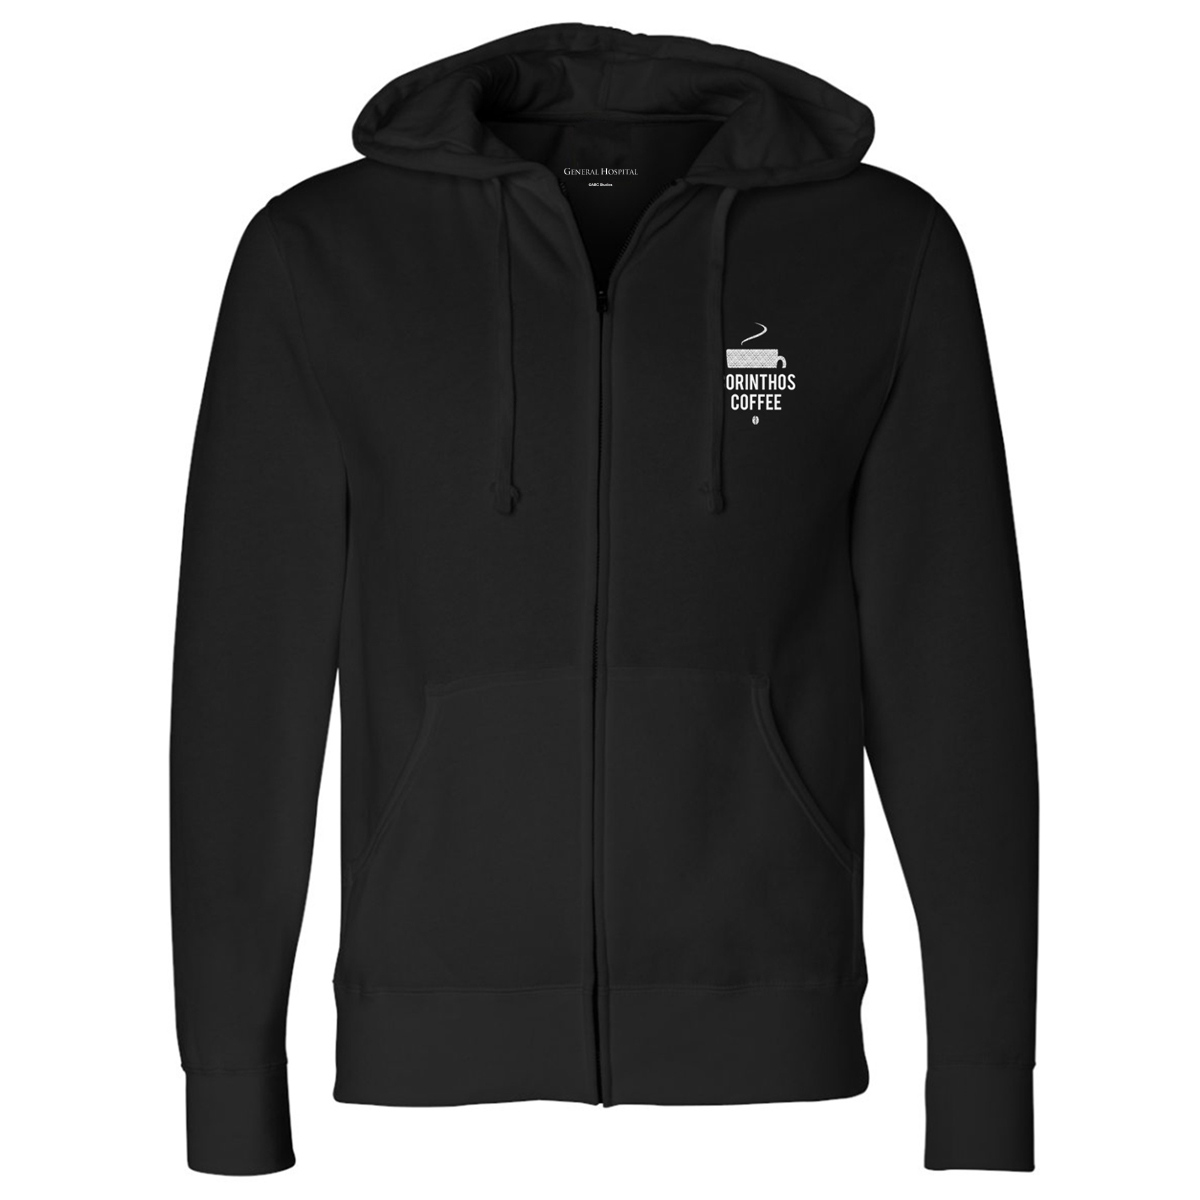 General Hospital Corinthos Coffee Zip Up Hoodie